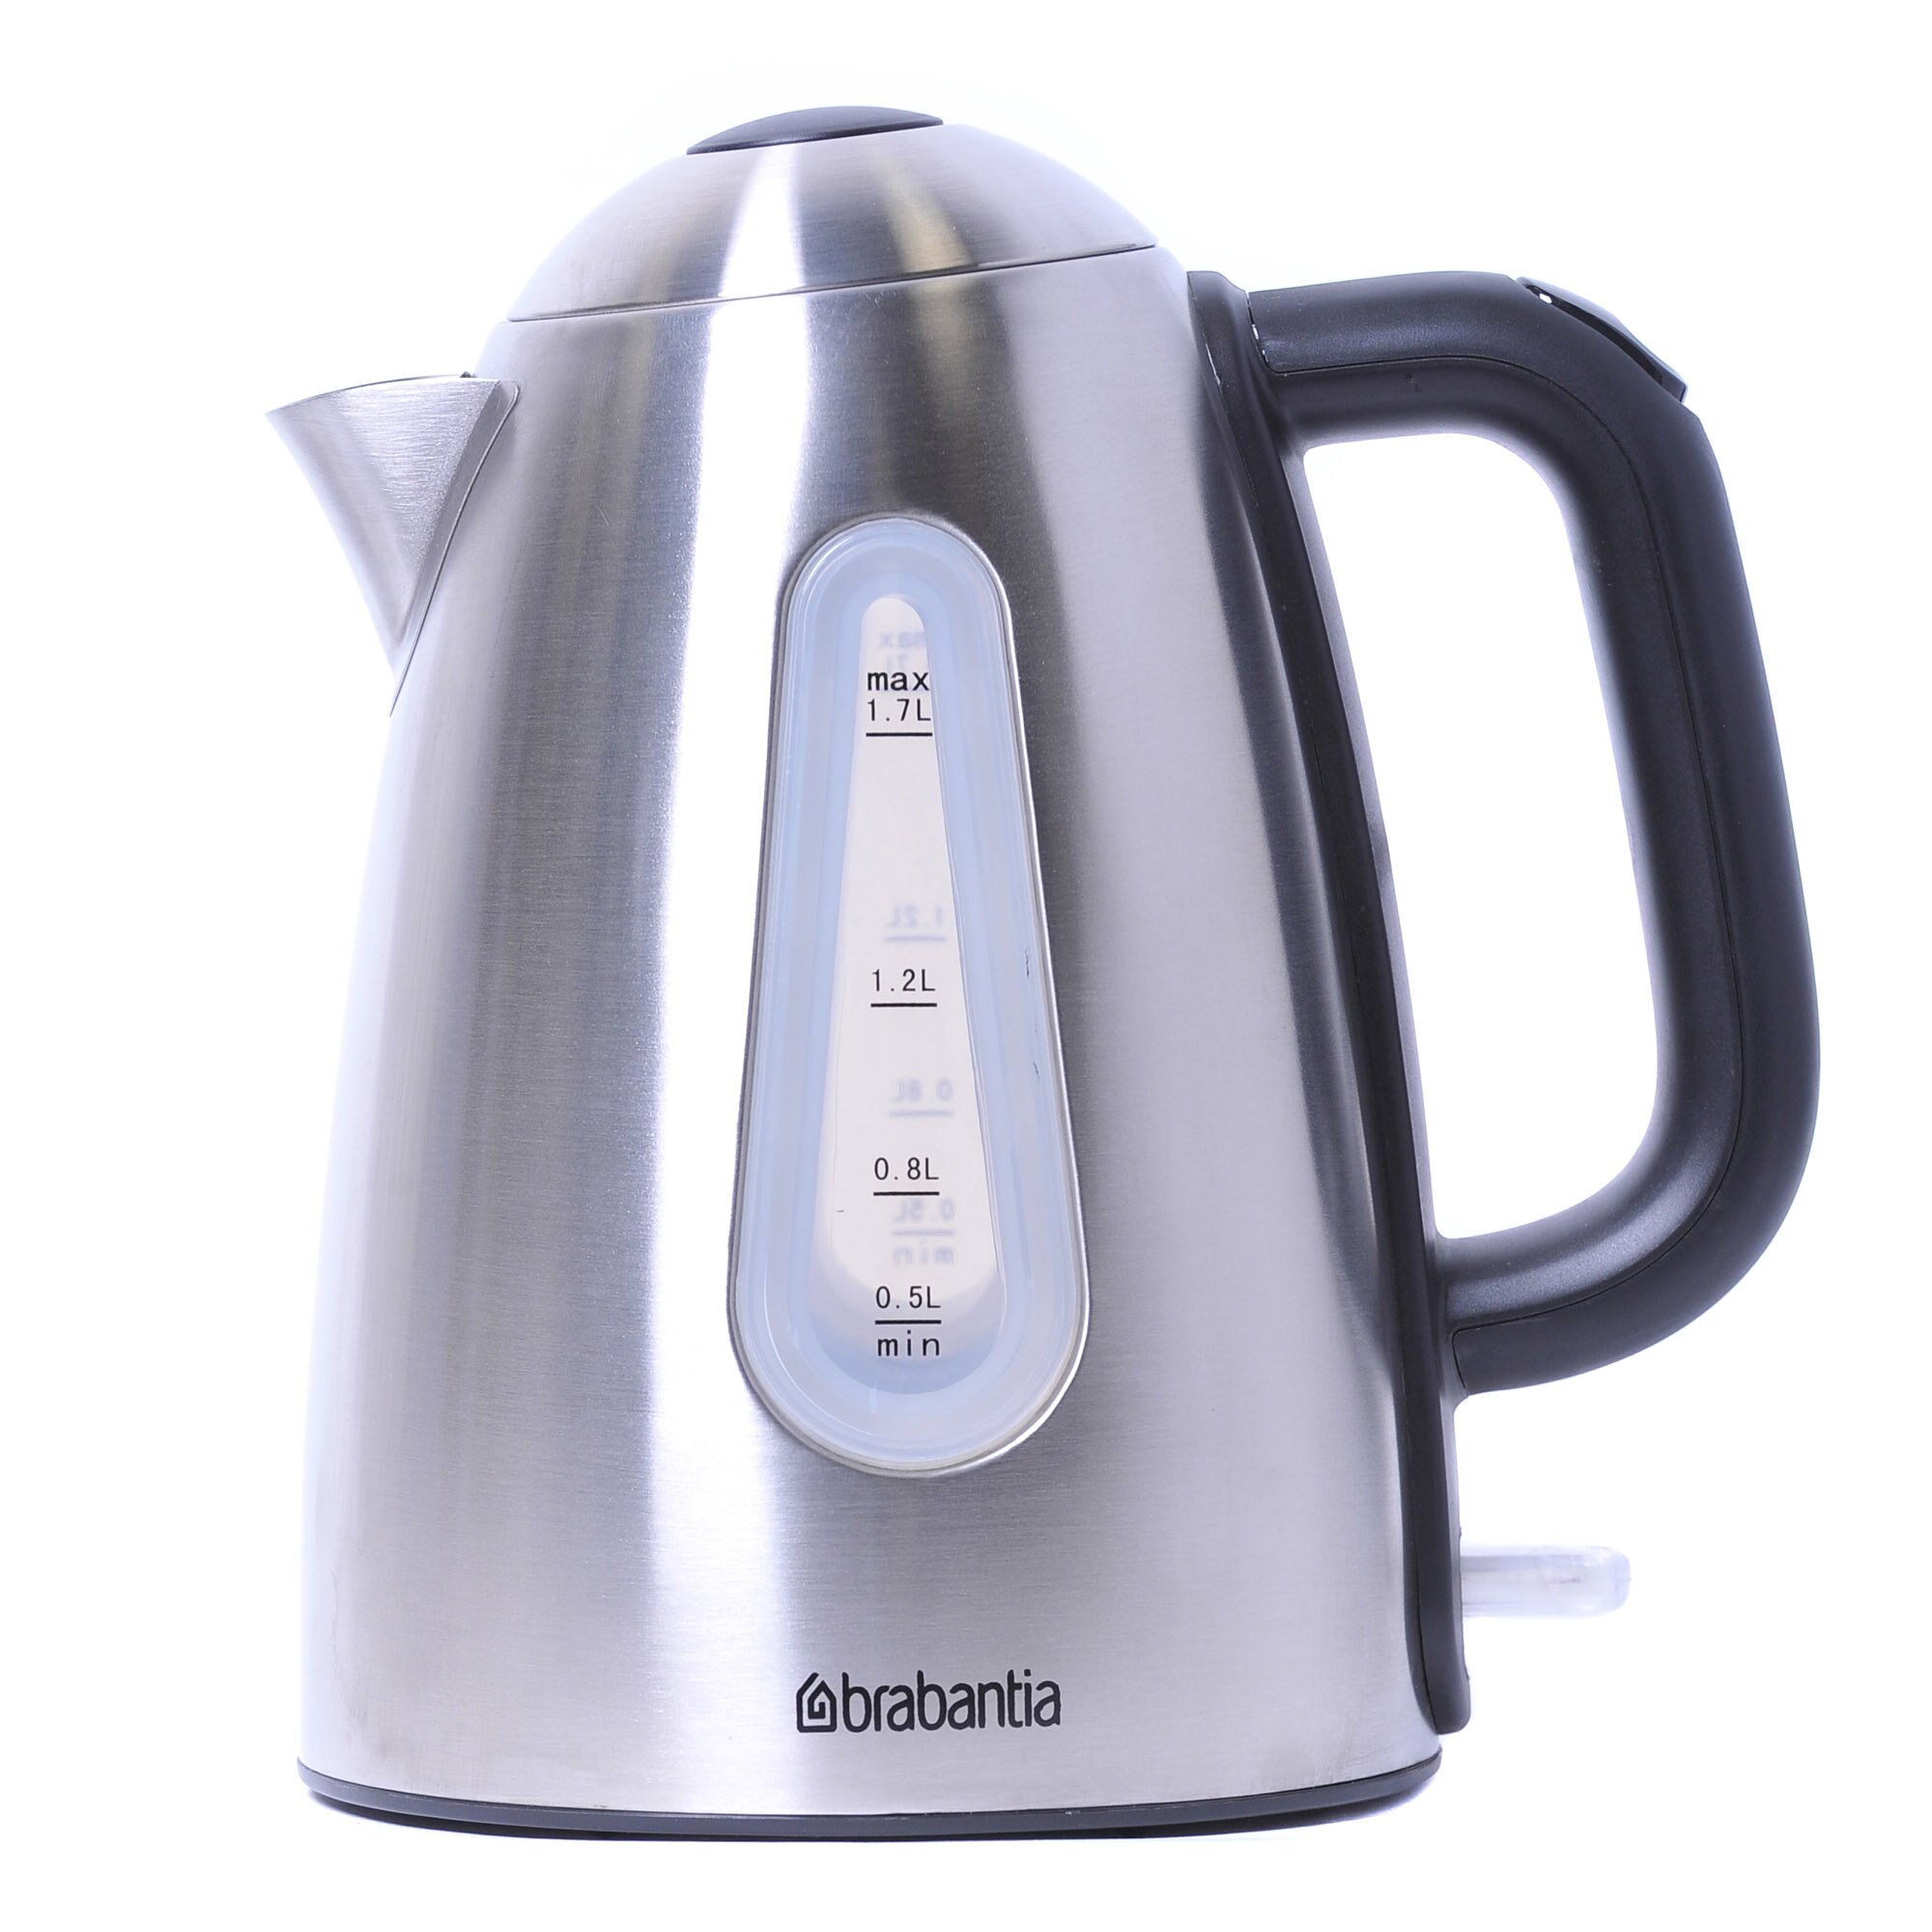 Brabantia 1 7L Stainless Steel Cordless Kettle VPB1199 on garden sheds for sale ia